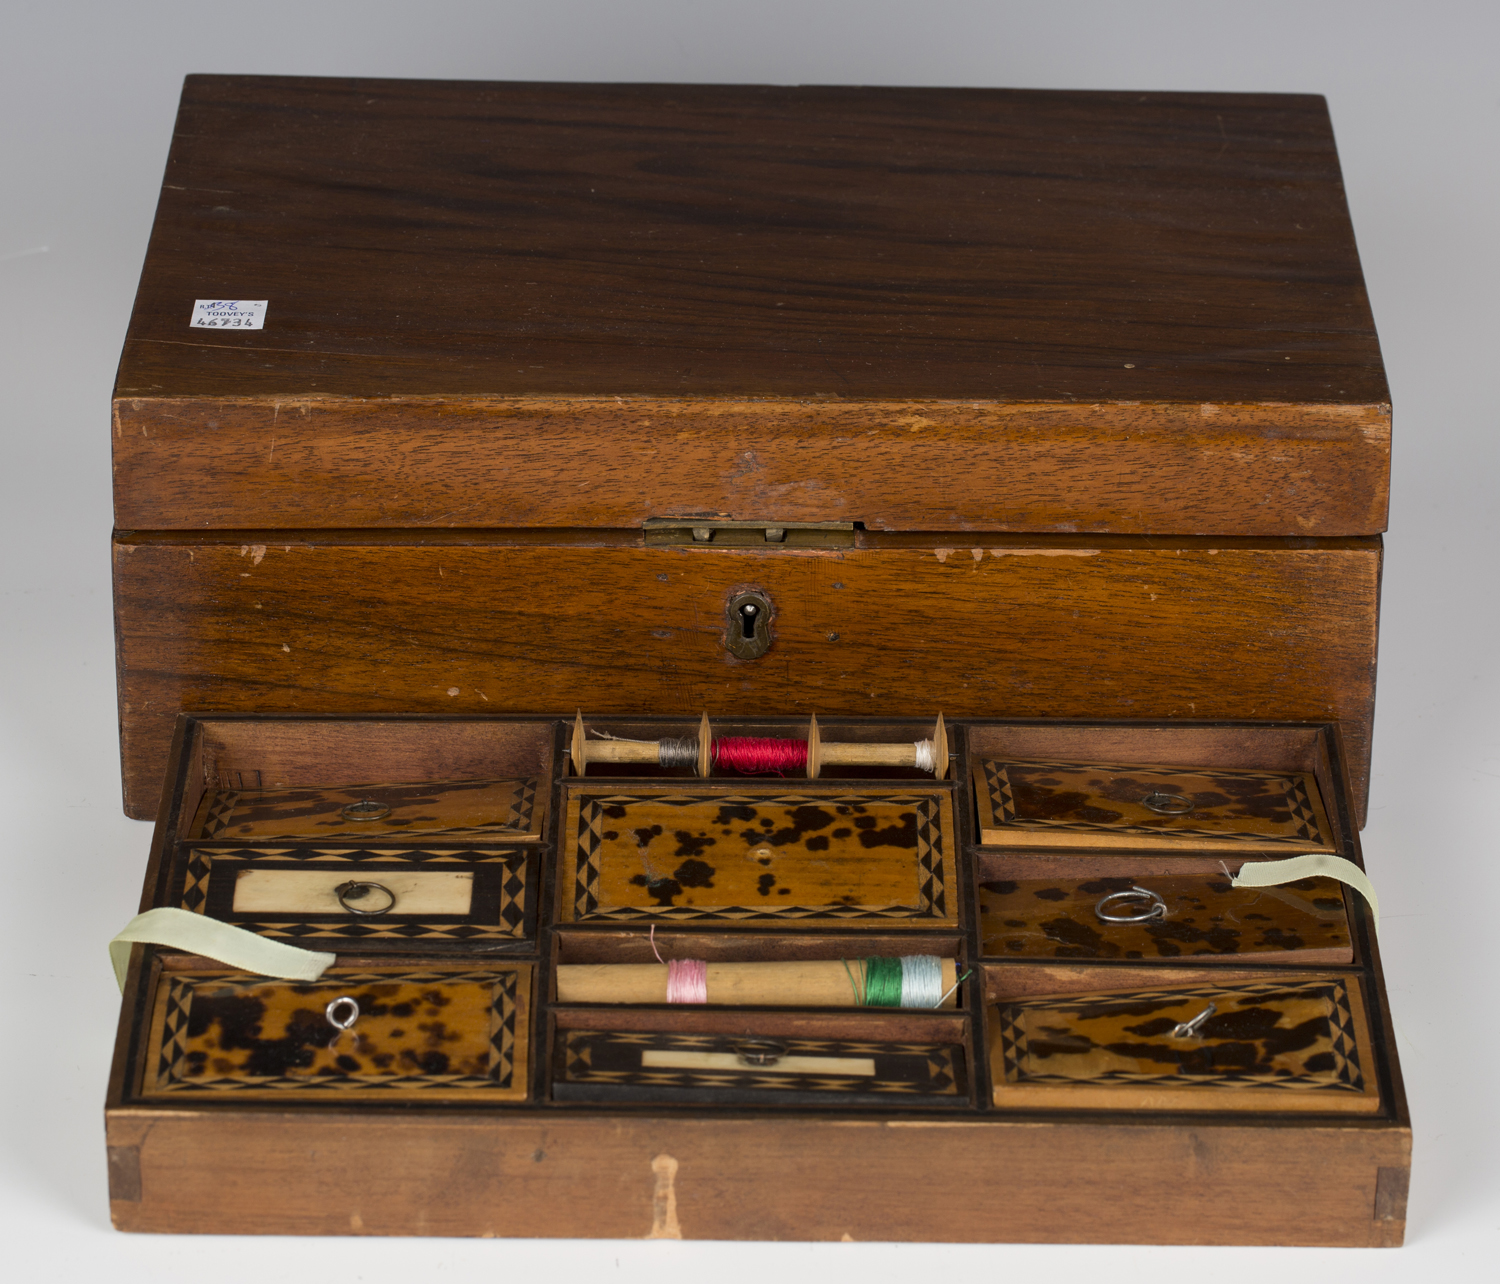 A late 19th century walnut workbox, the interior with a removable tray inset with tortoiseshell - Image 2 of 3